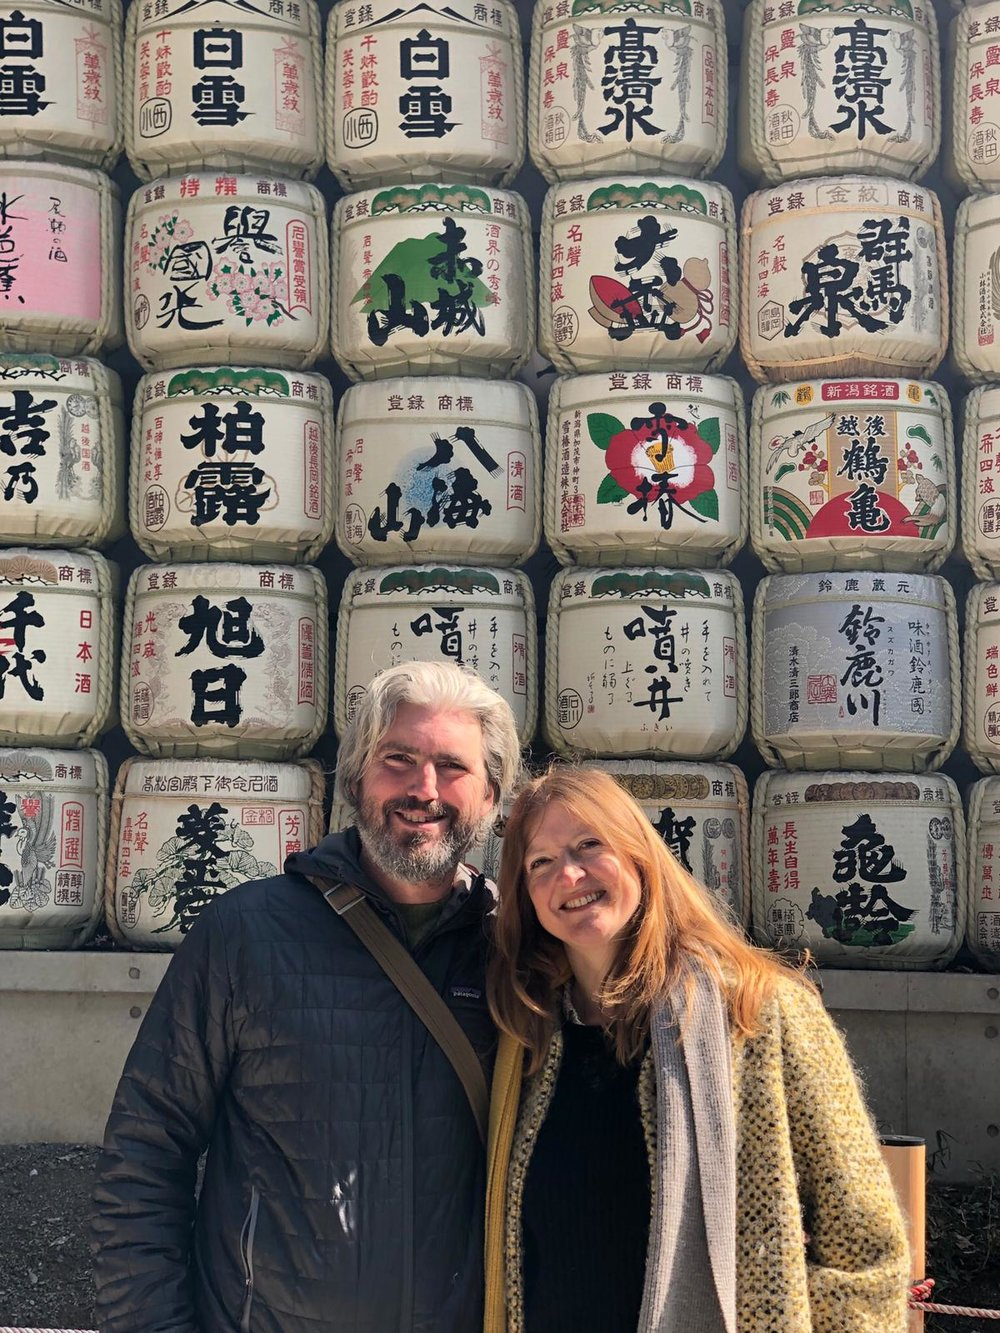 Paul and Esther at a shrine in Tokyo.